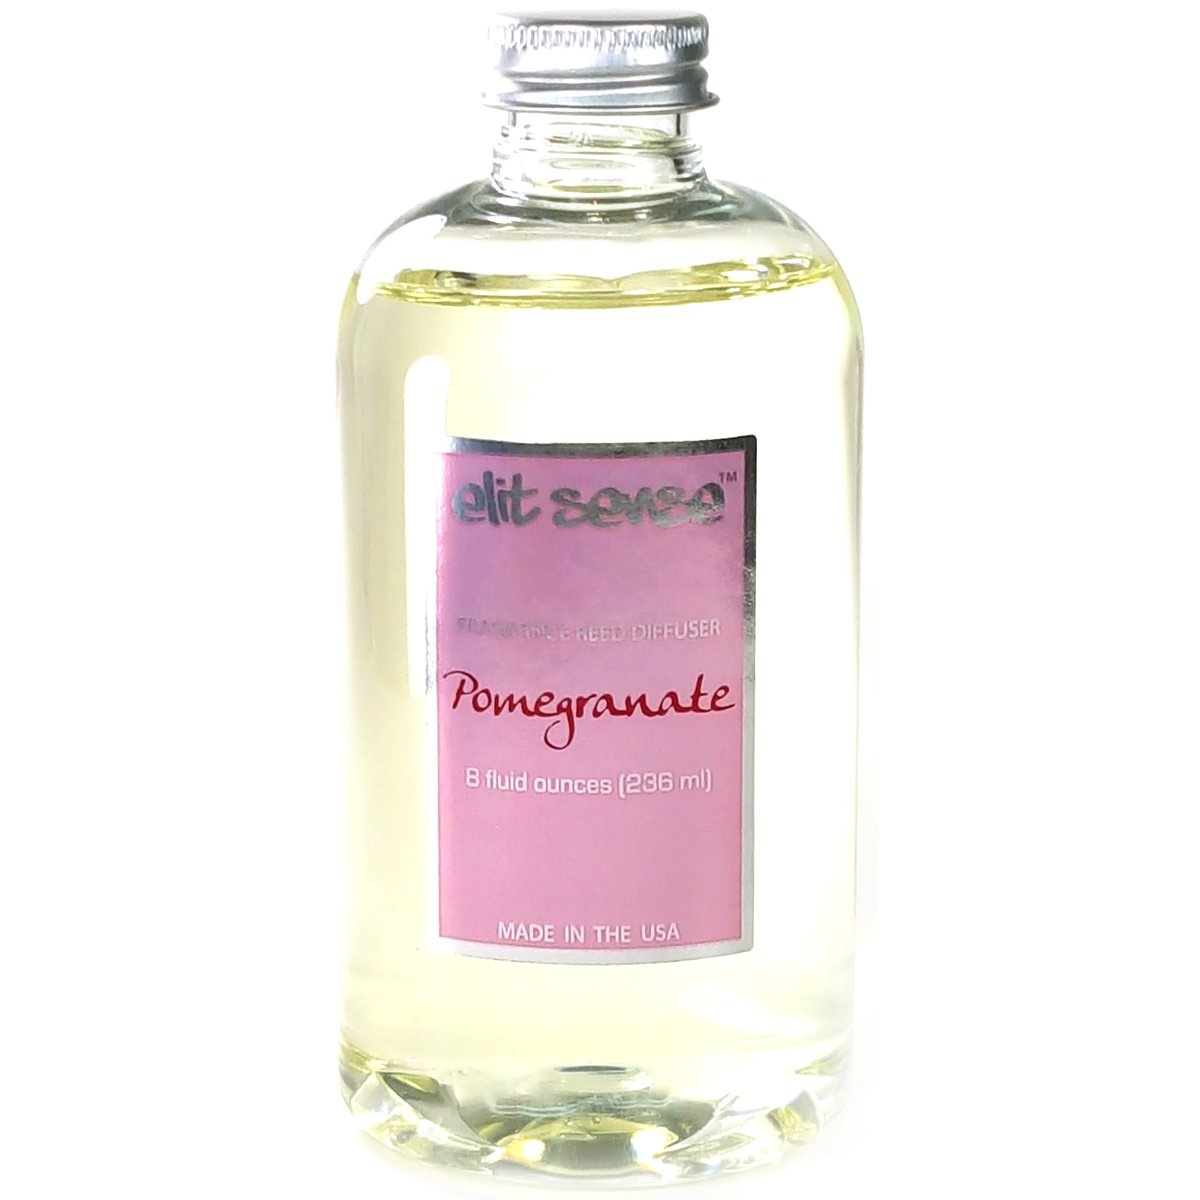 Pomegranate Reed Diffuser Refill Oil, 8 oz